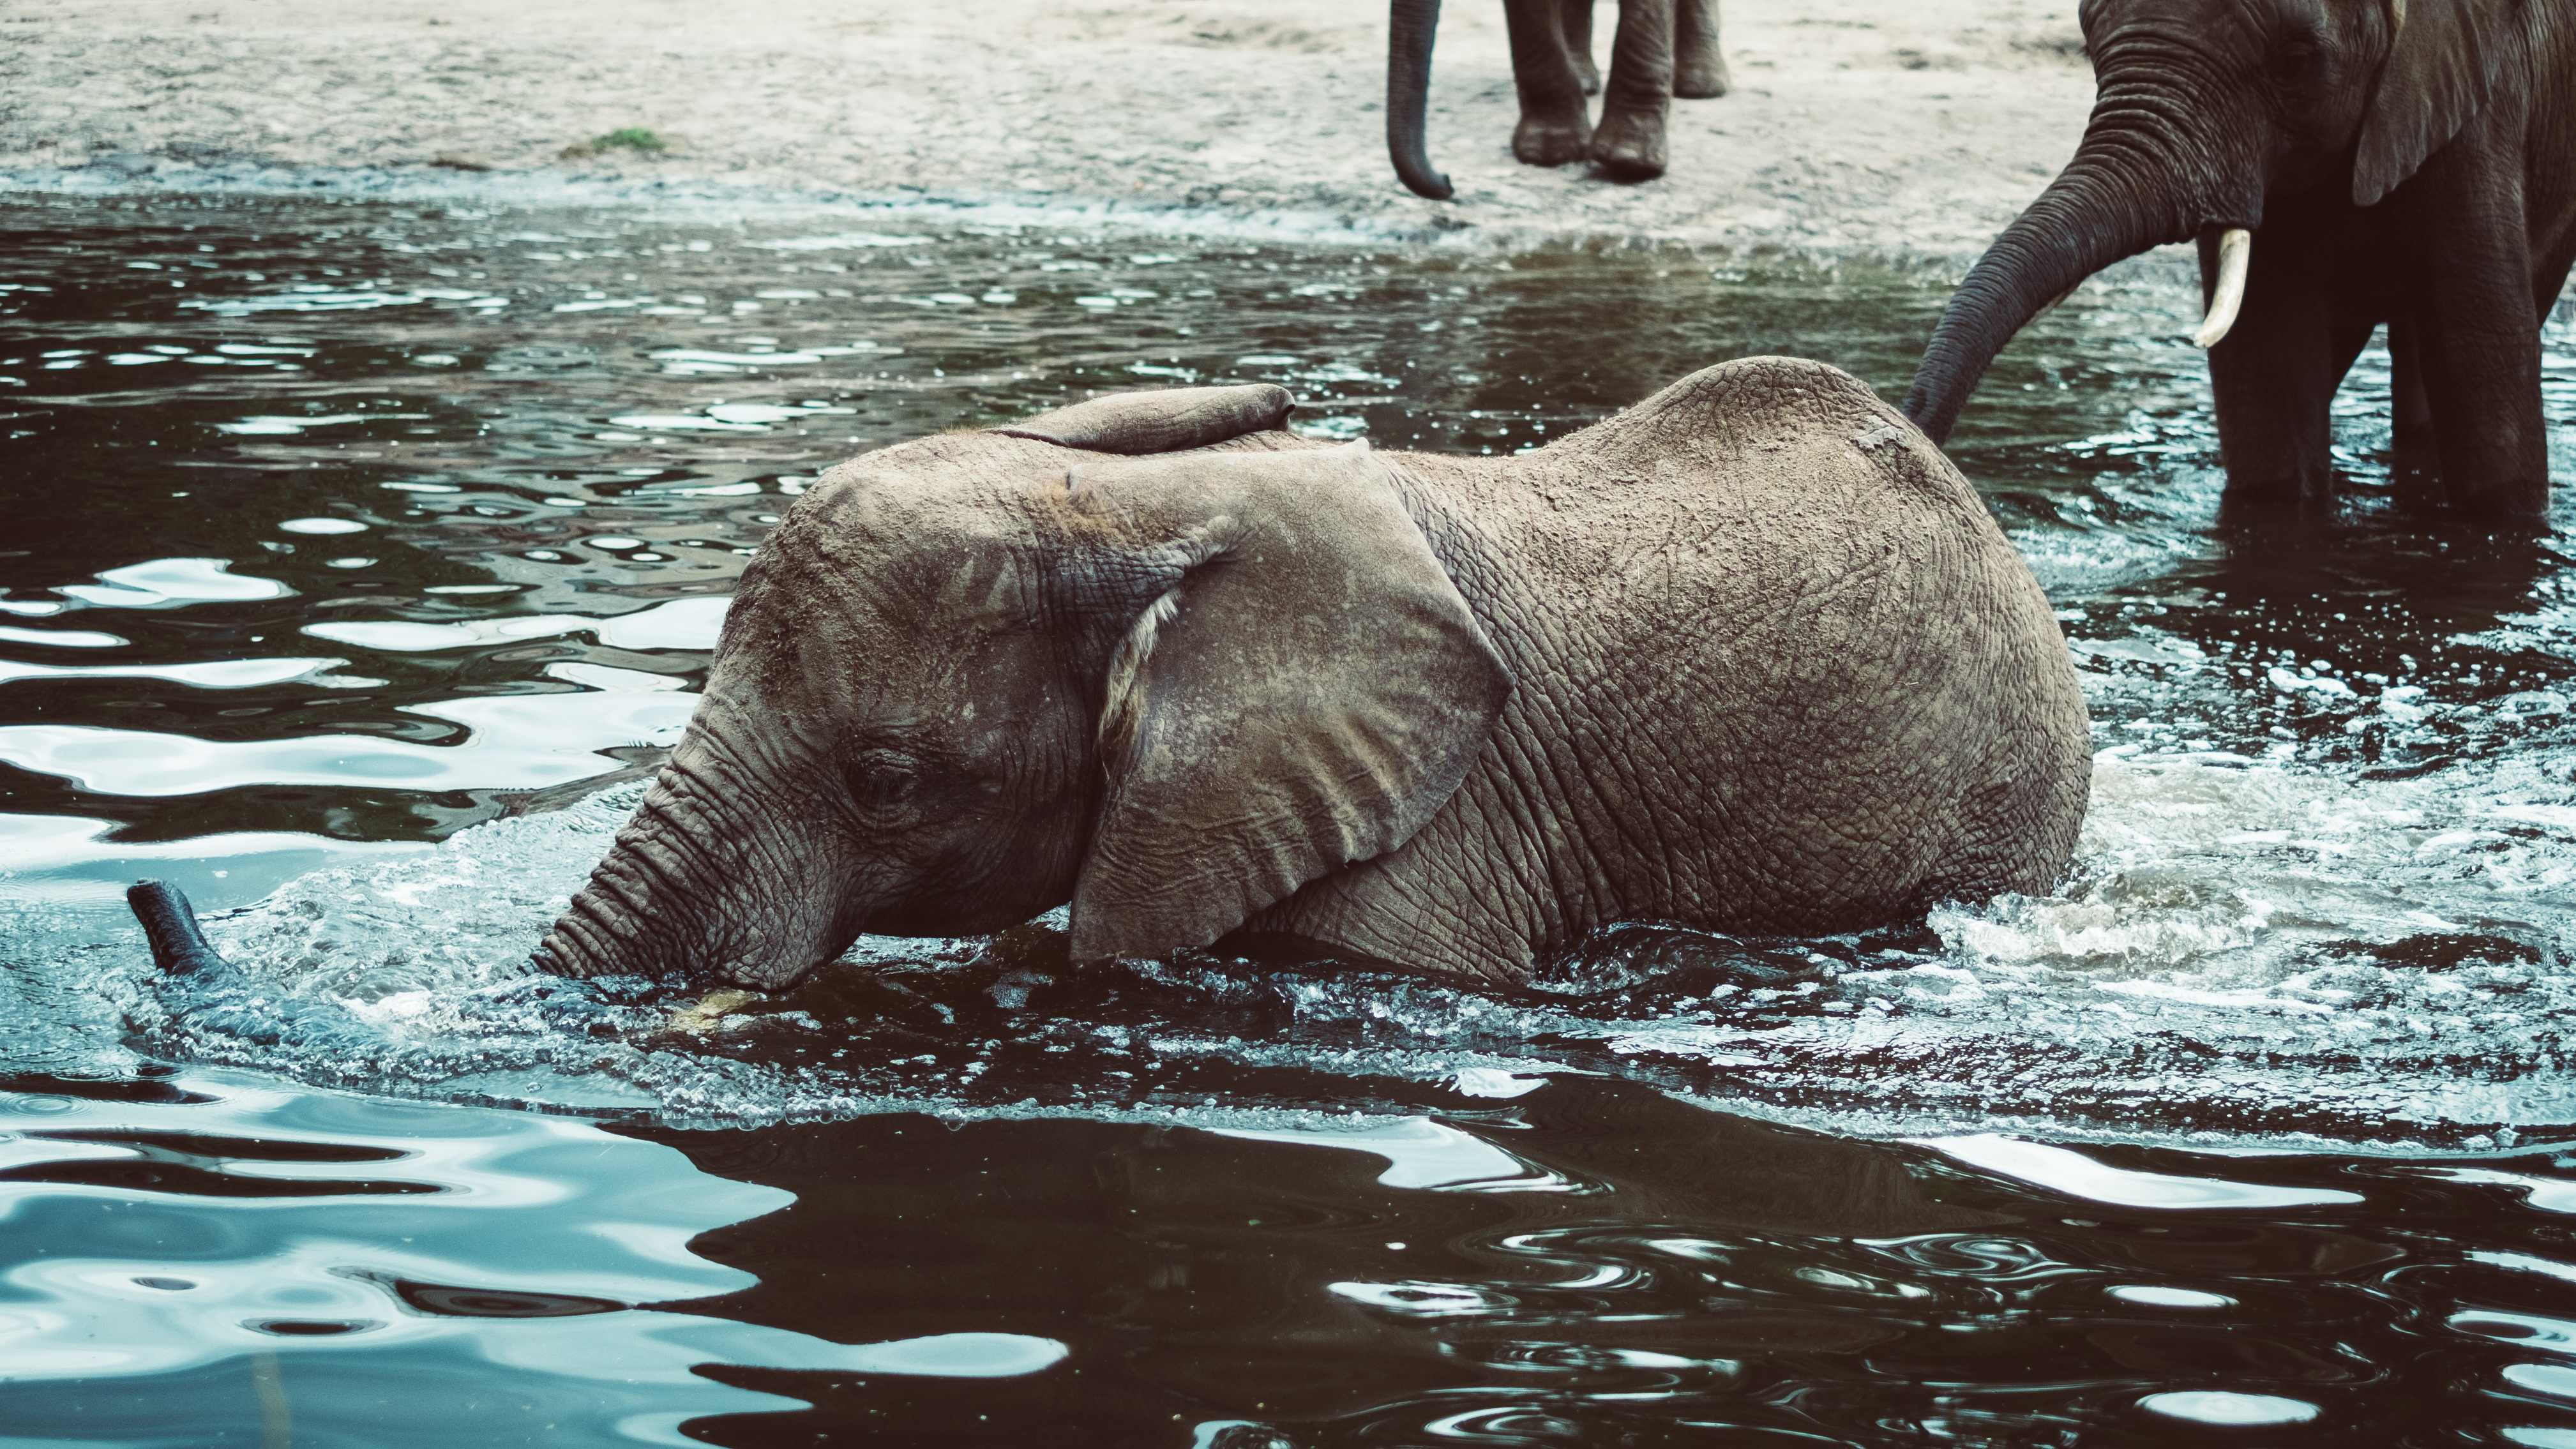 104034 download wallpaper Animals, Elephant, Young, Joey, Water screensavers and pictures for free